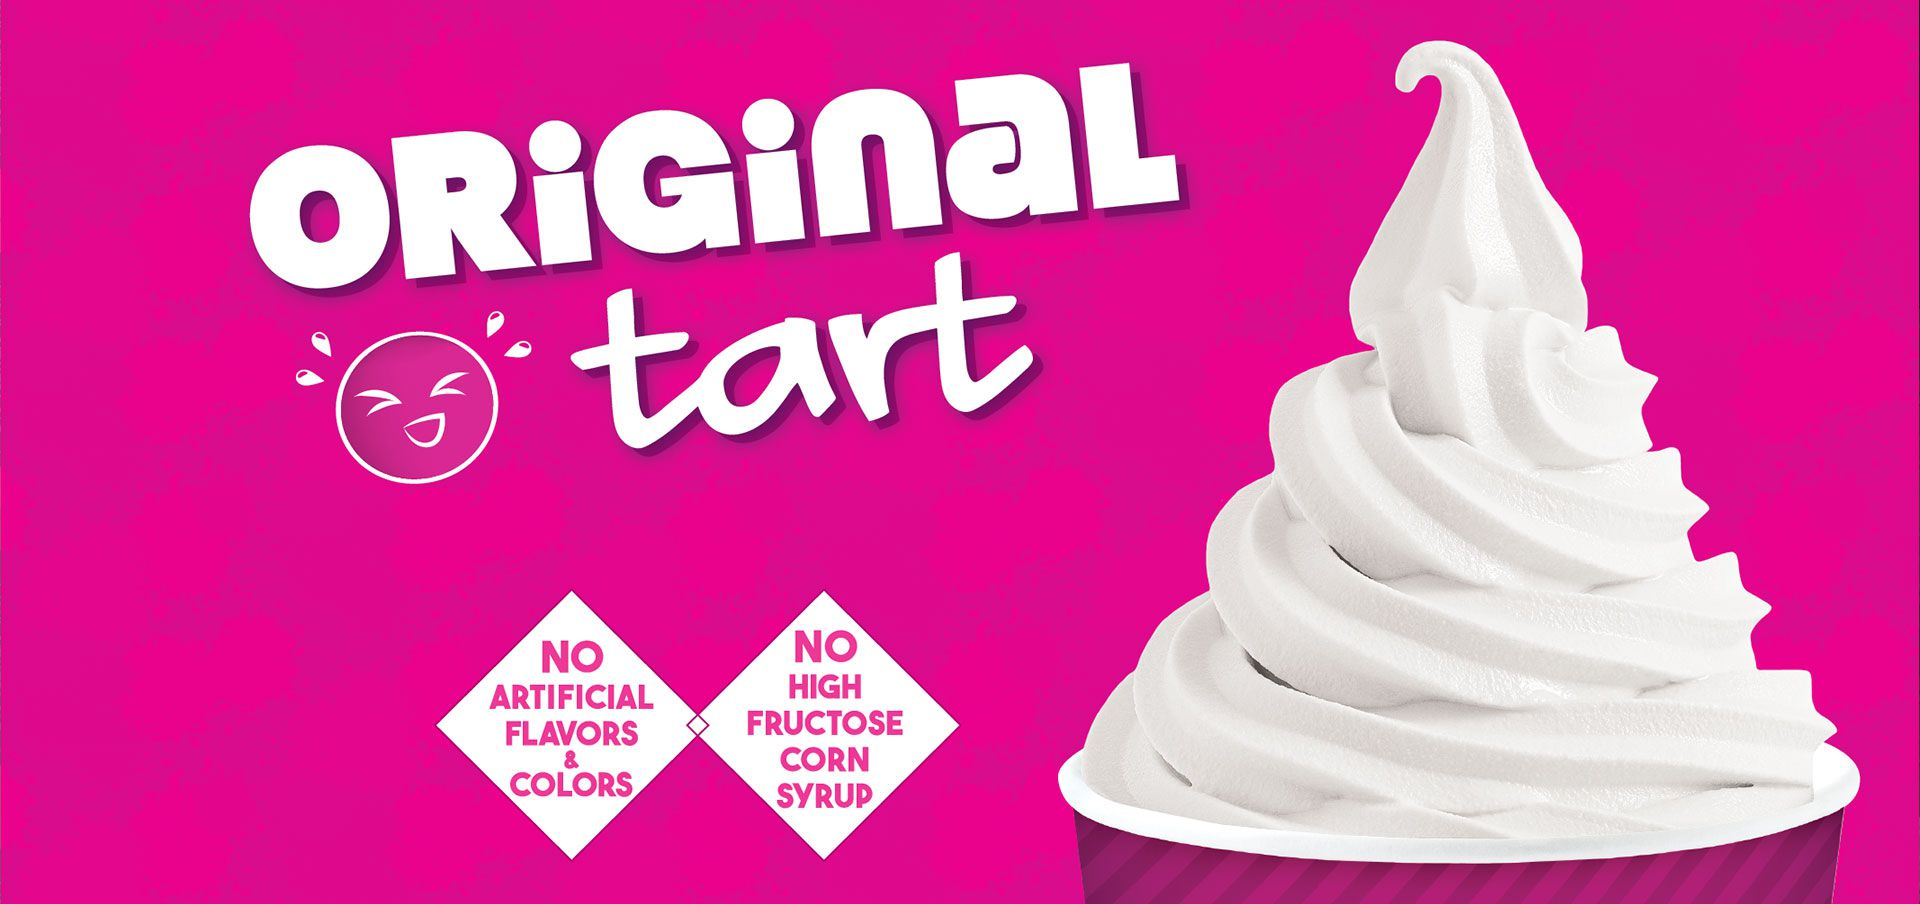 original tart label image